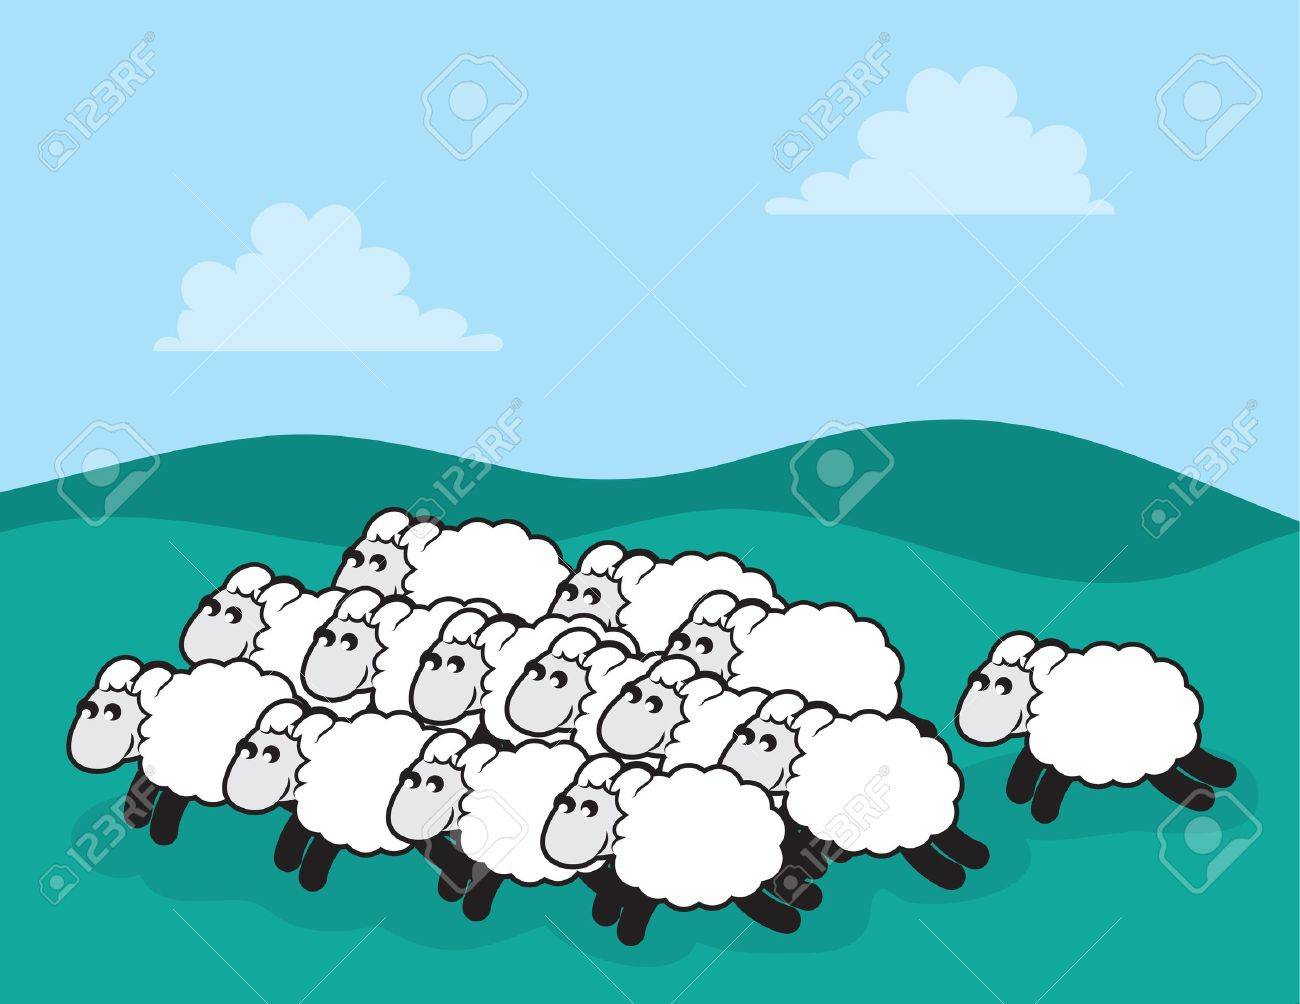 Flock of sheep in a grassy field - 18409507